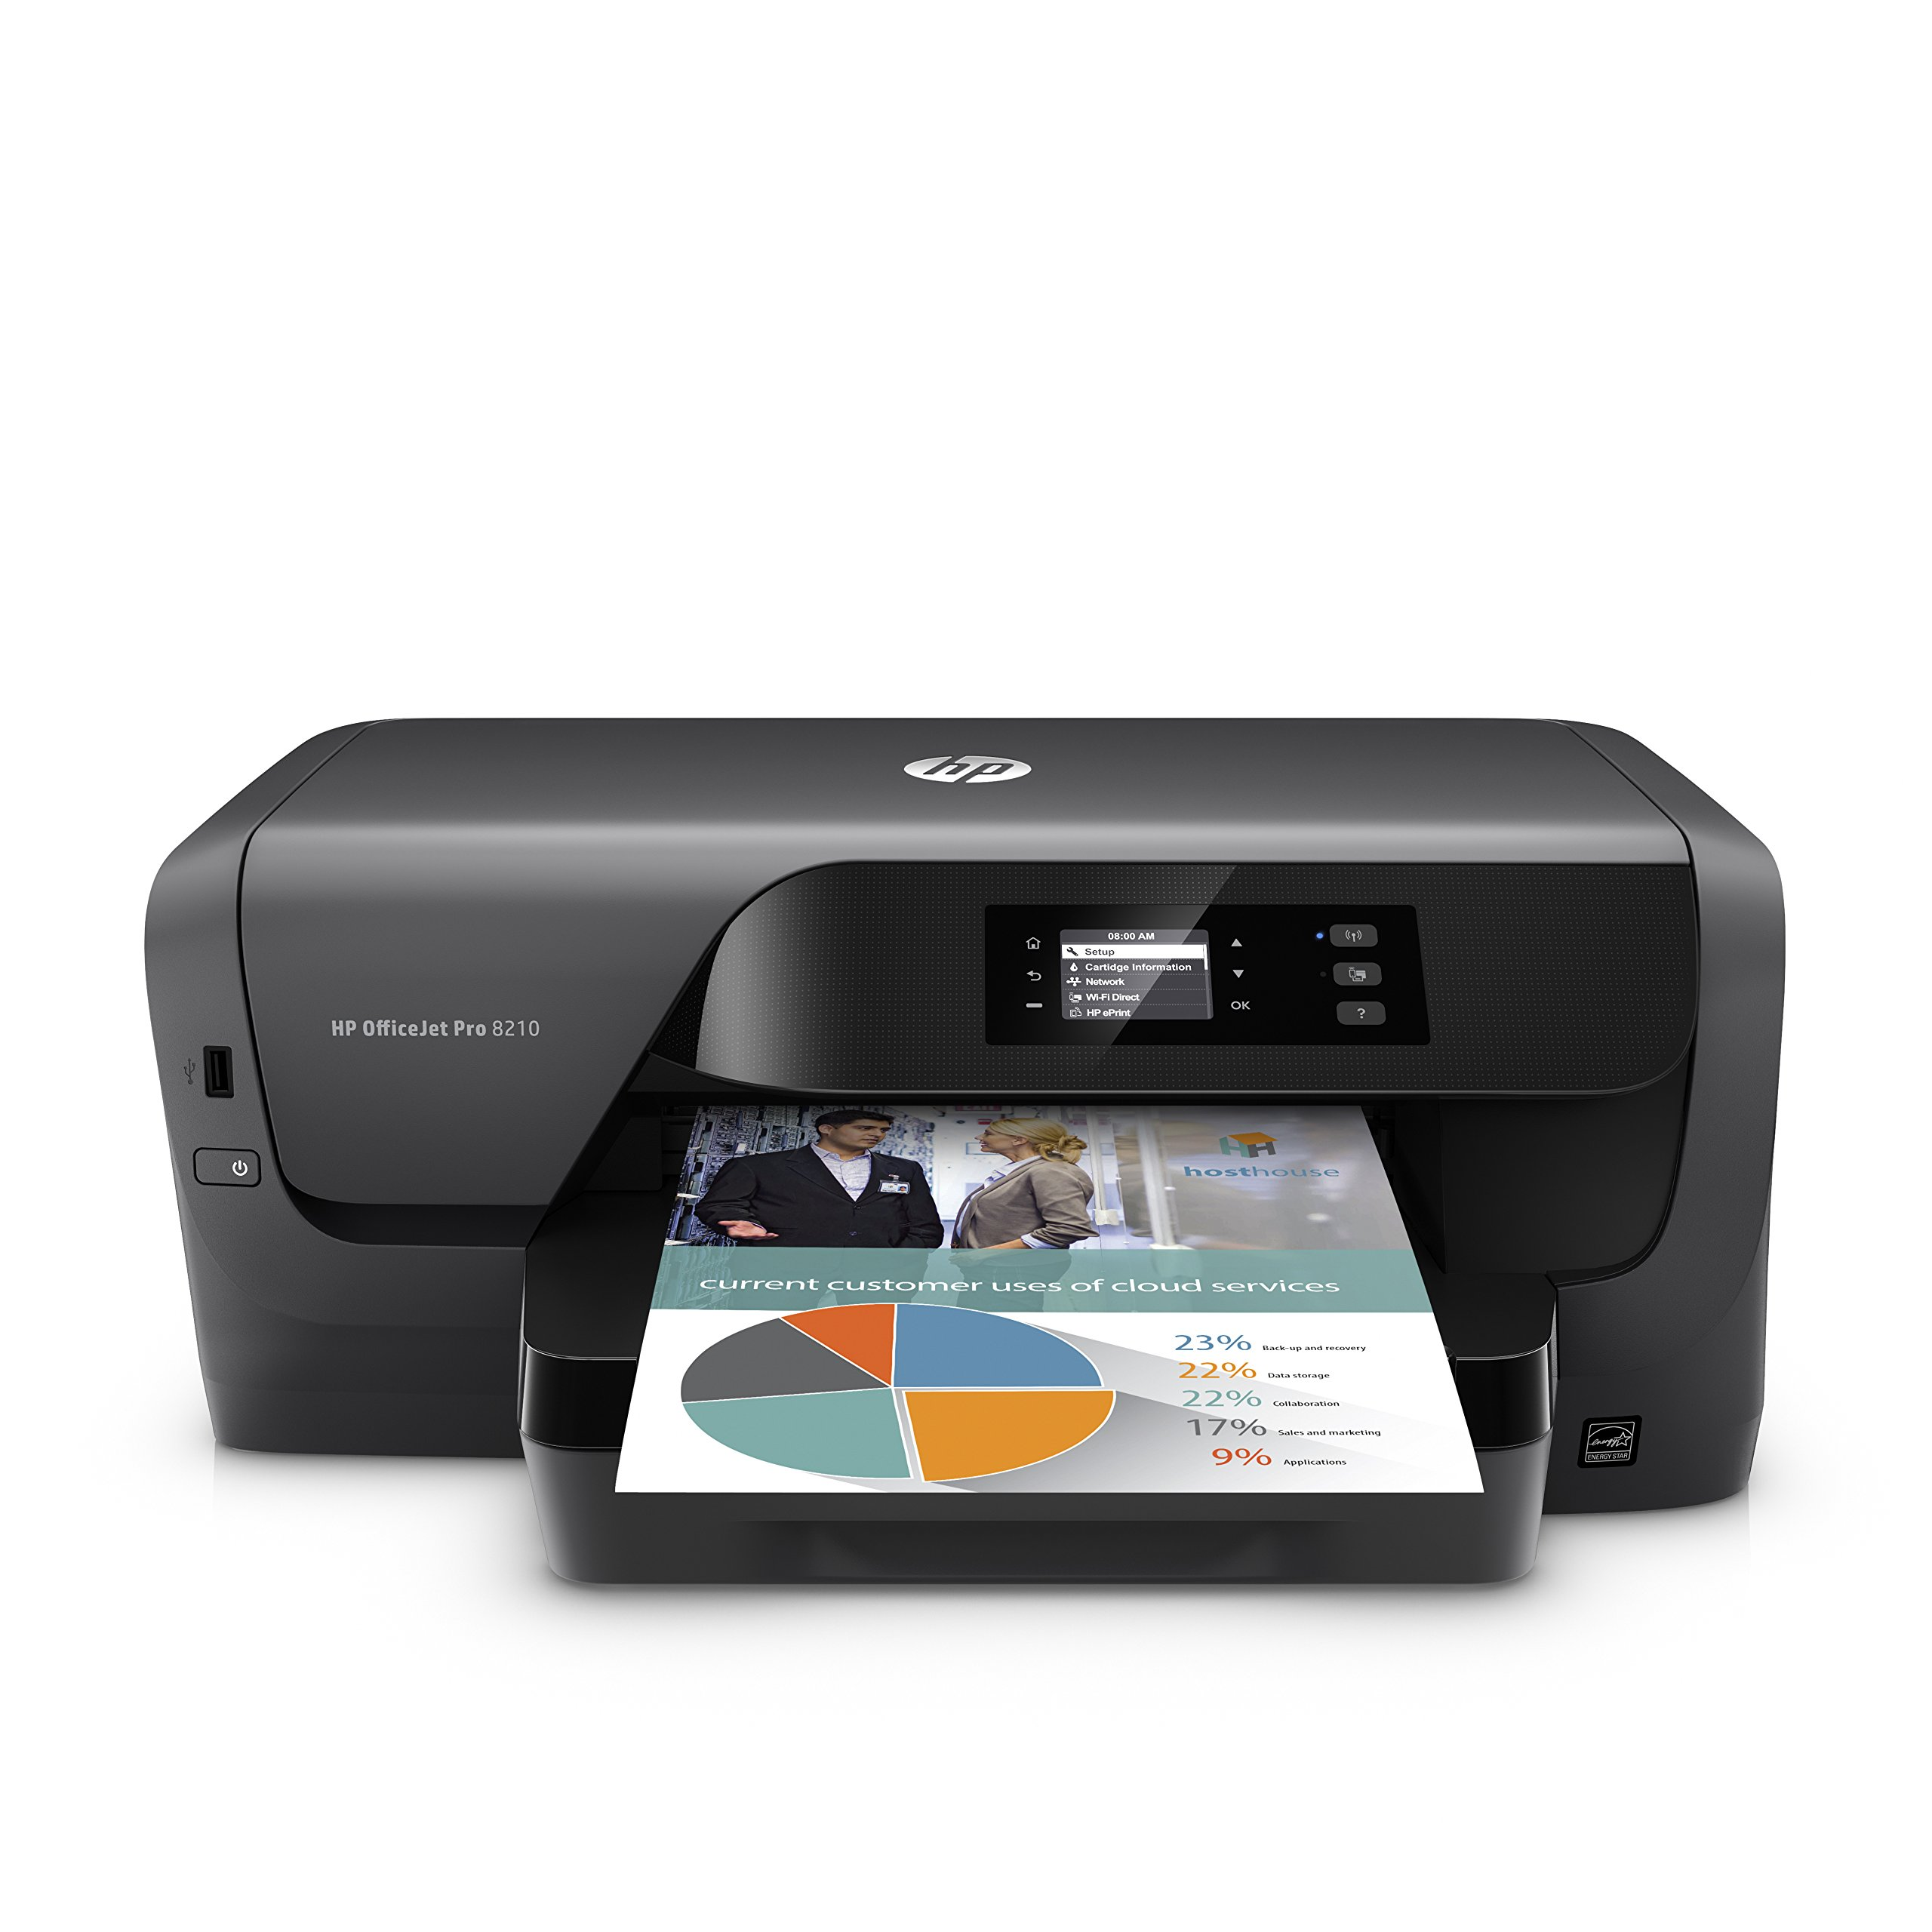 HP OfficeJet Pro 8210 Wireless Color Printer, HP Instant Ink & Amazon Dash Replenishment ready (D9L64A) by HP